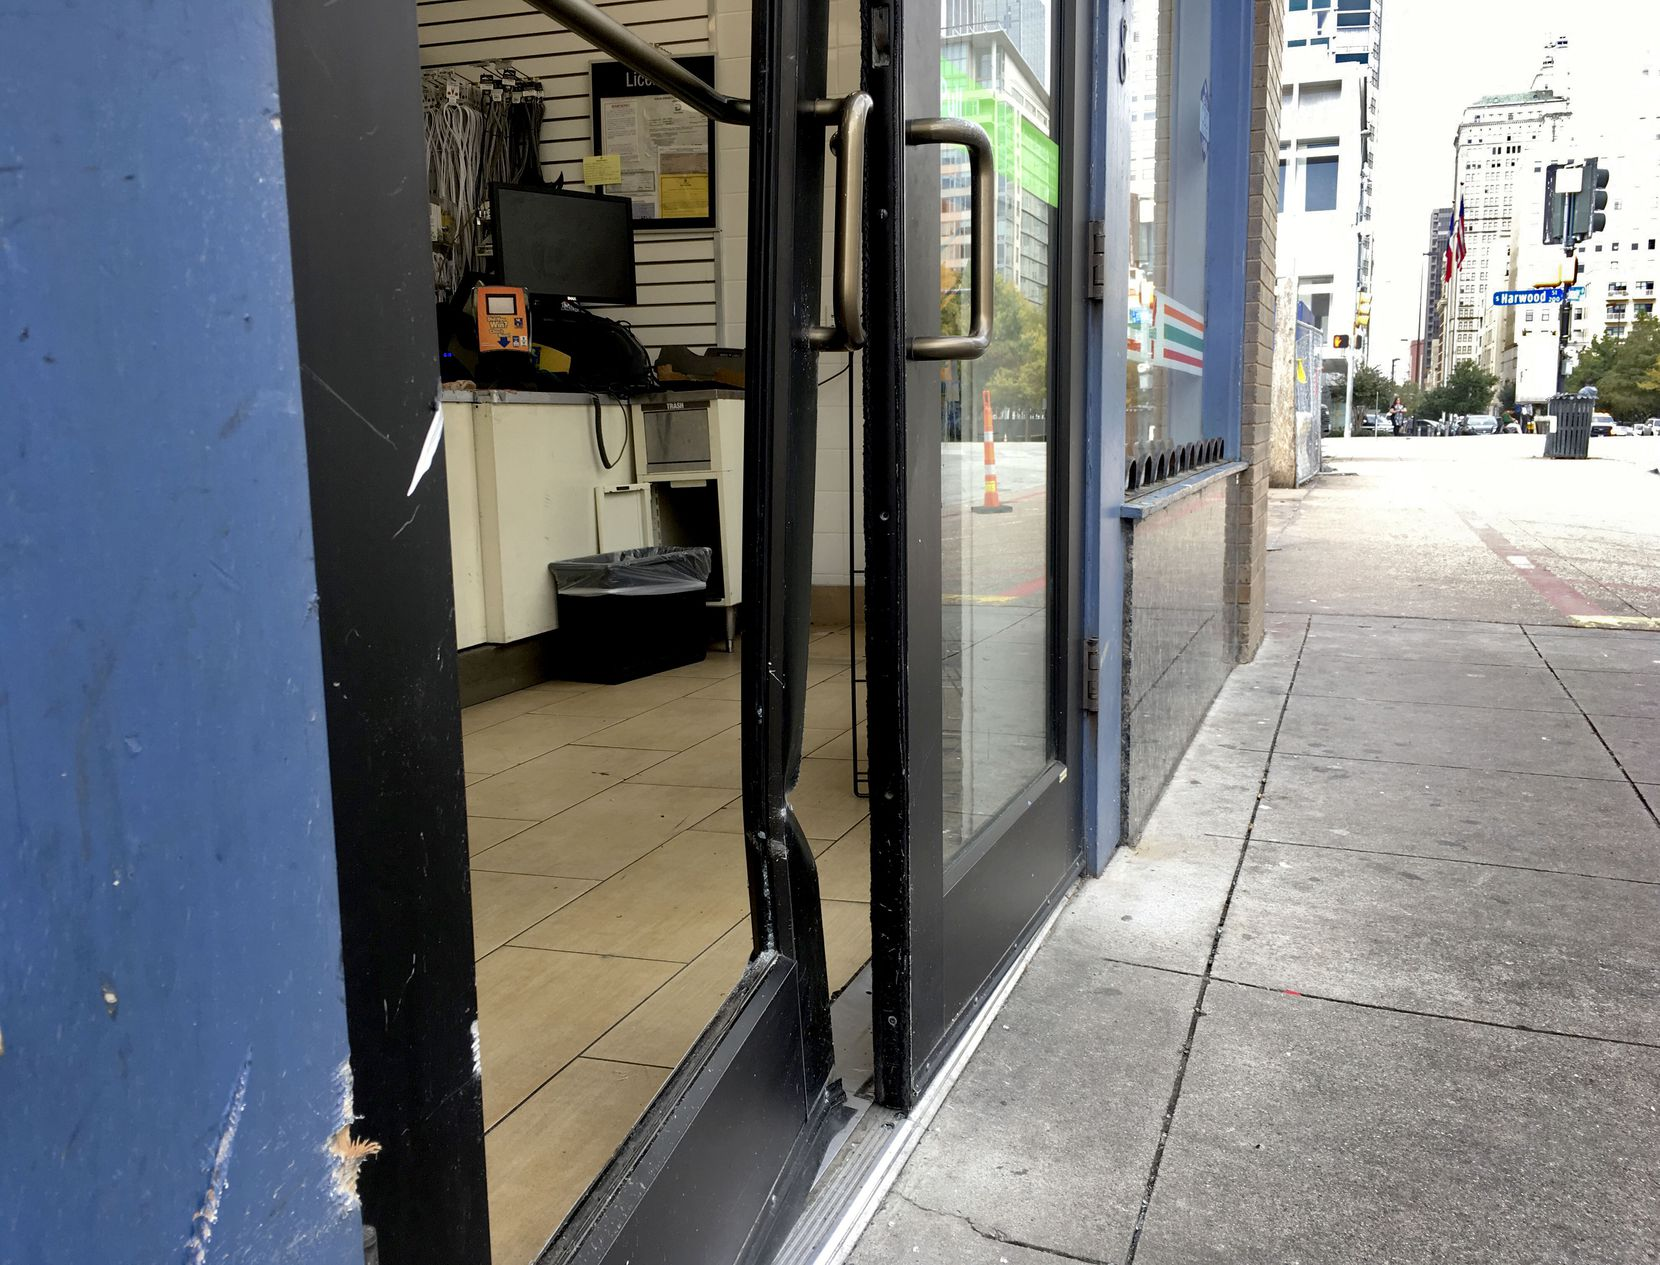 The cash machine shattered the glass and bent the frame of the door as it was pulled free.